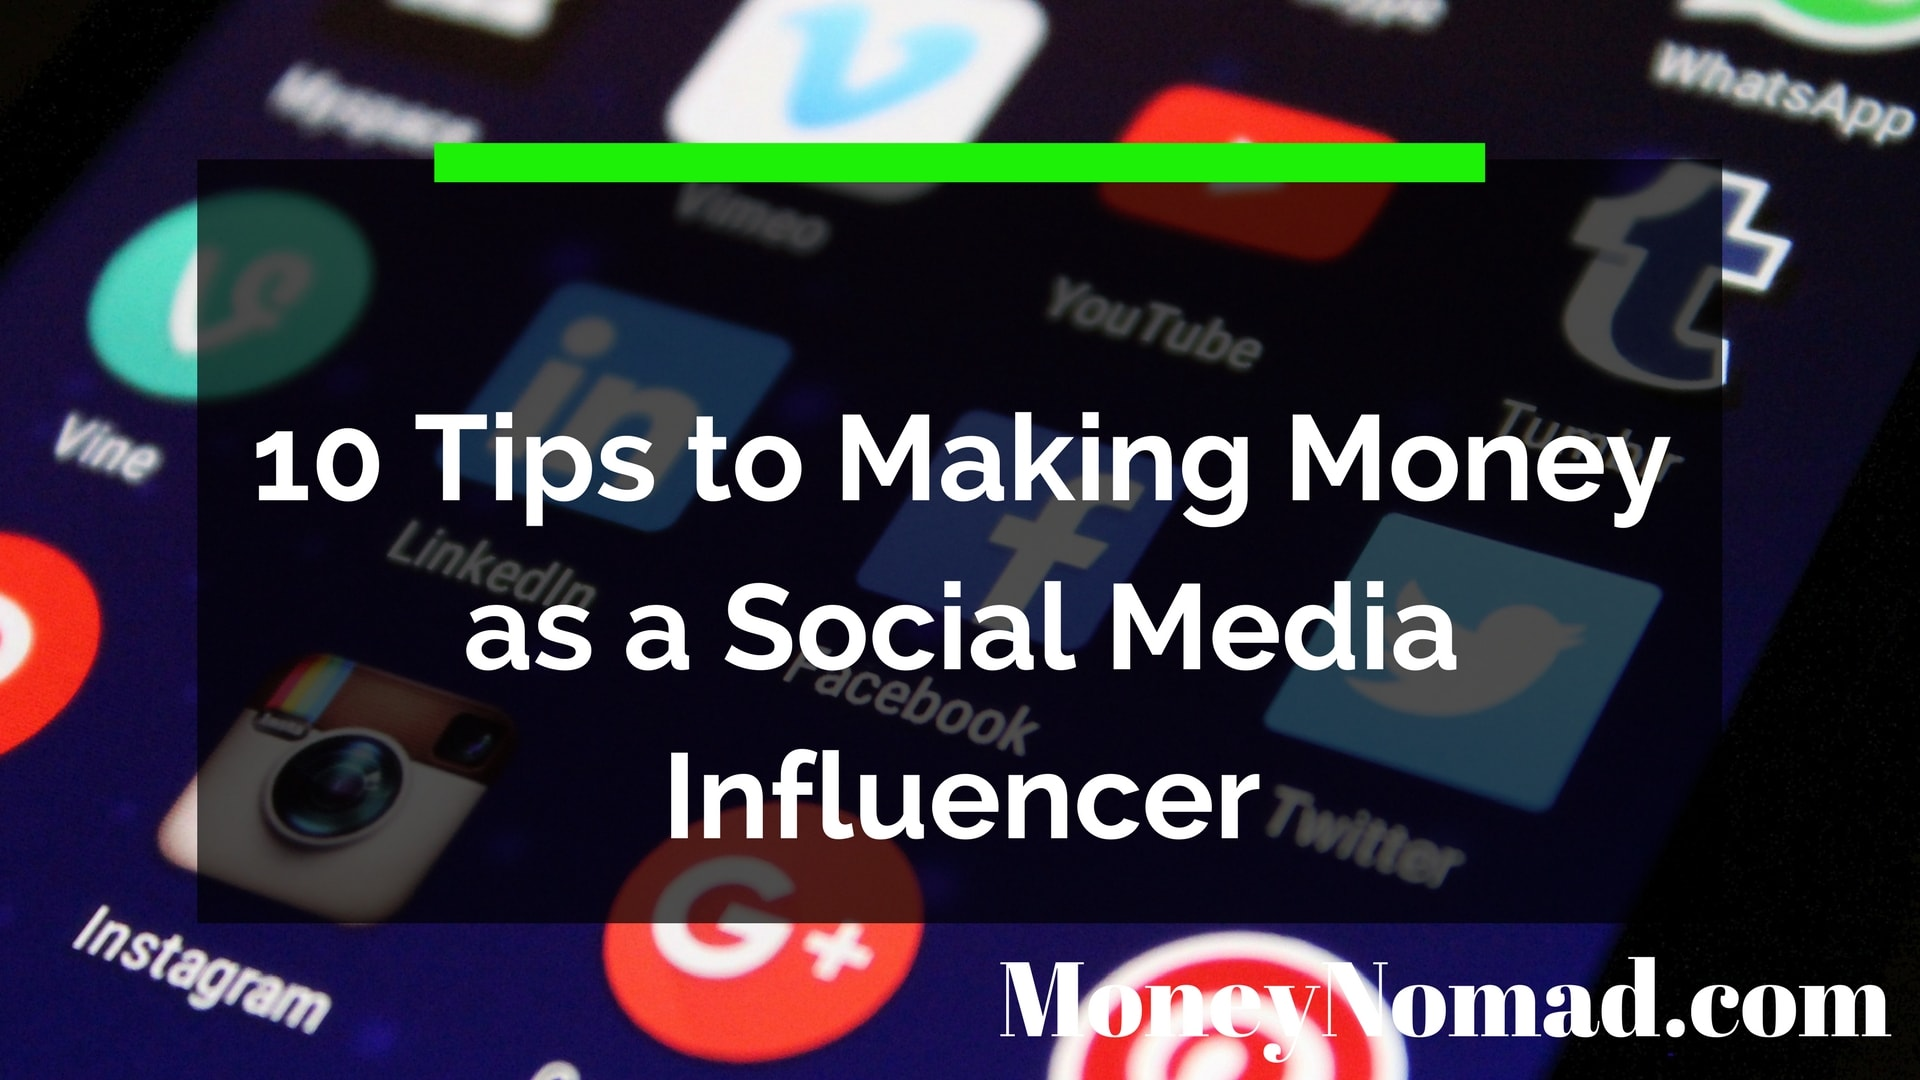 10 Tips to Making Money as a Social Media Influencer